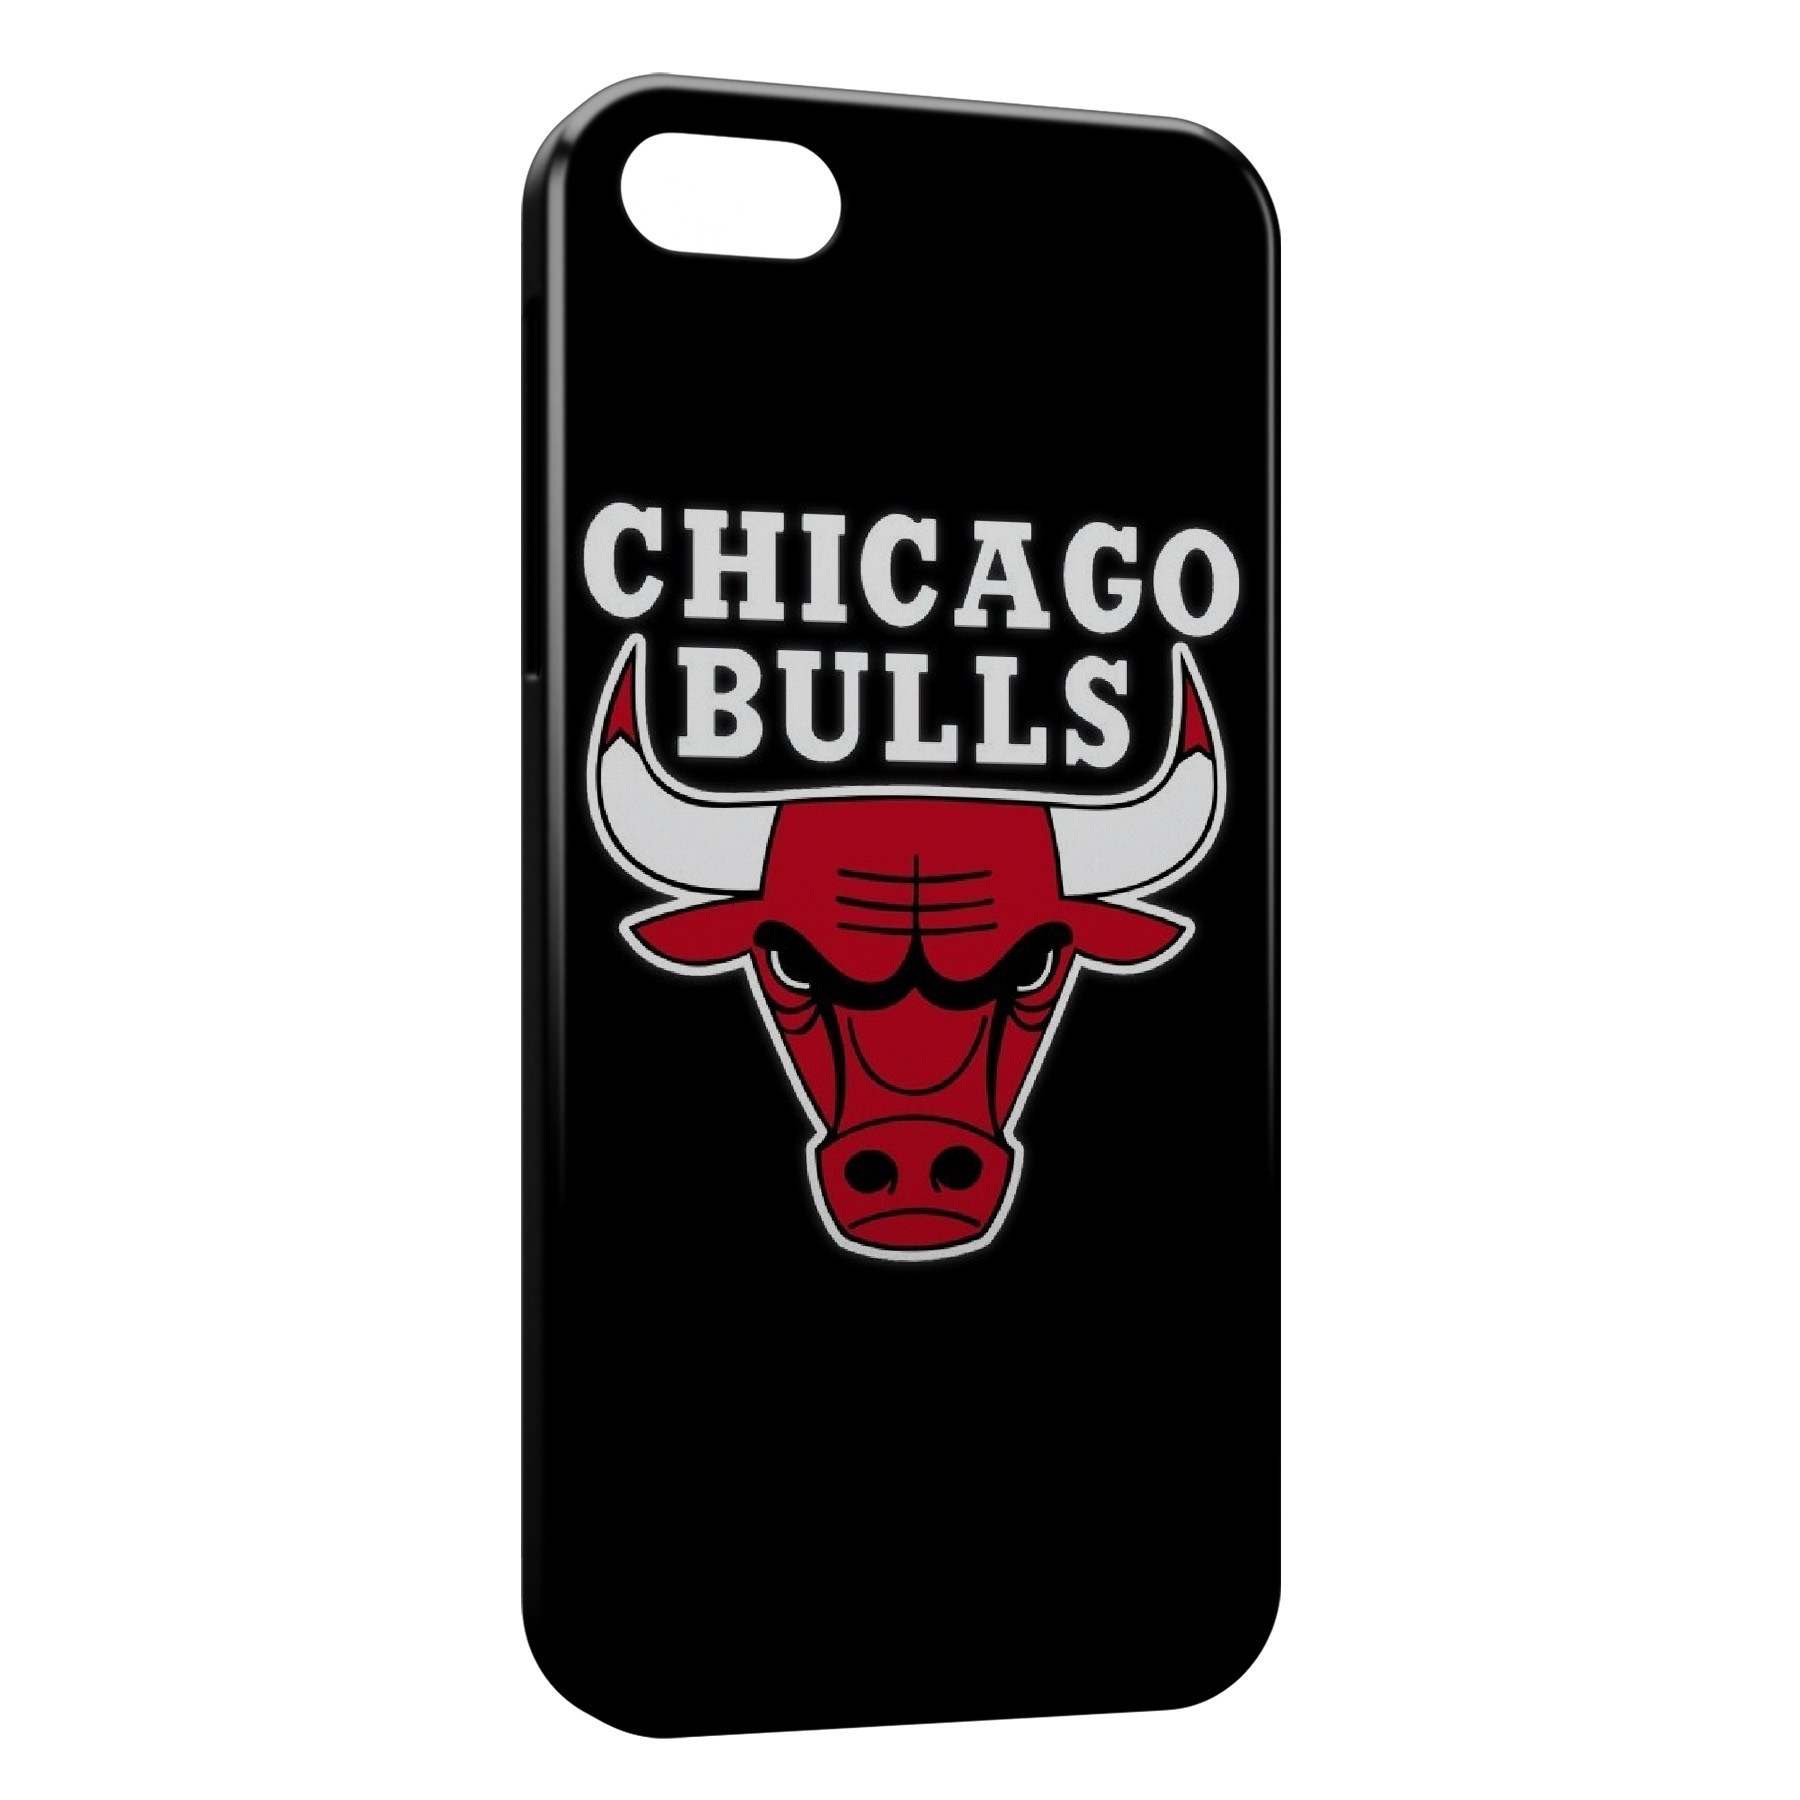 iphone 6 coque basketball